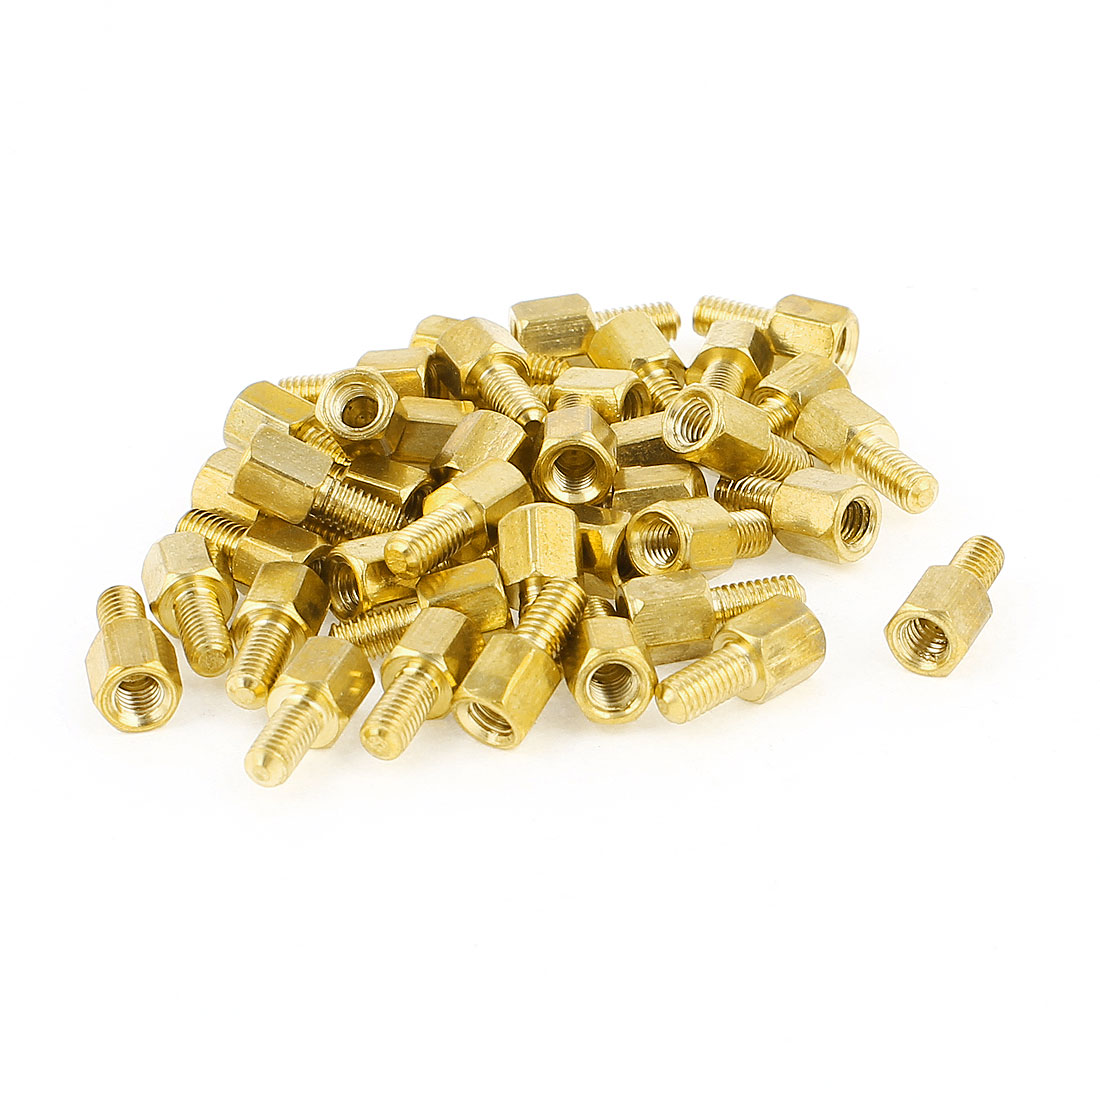 39Pcs M3x6mm Machine Boards Hexagonal Threaded Spacer Gold Tone